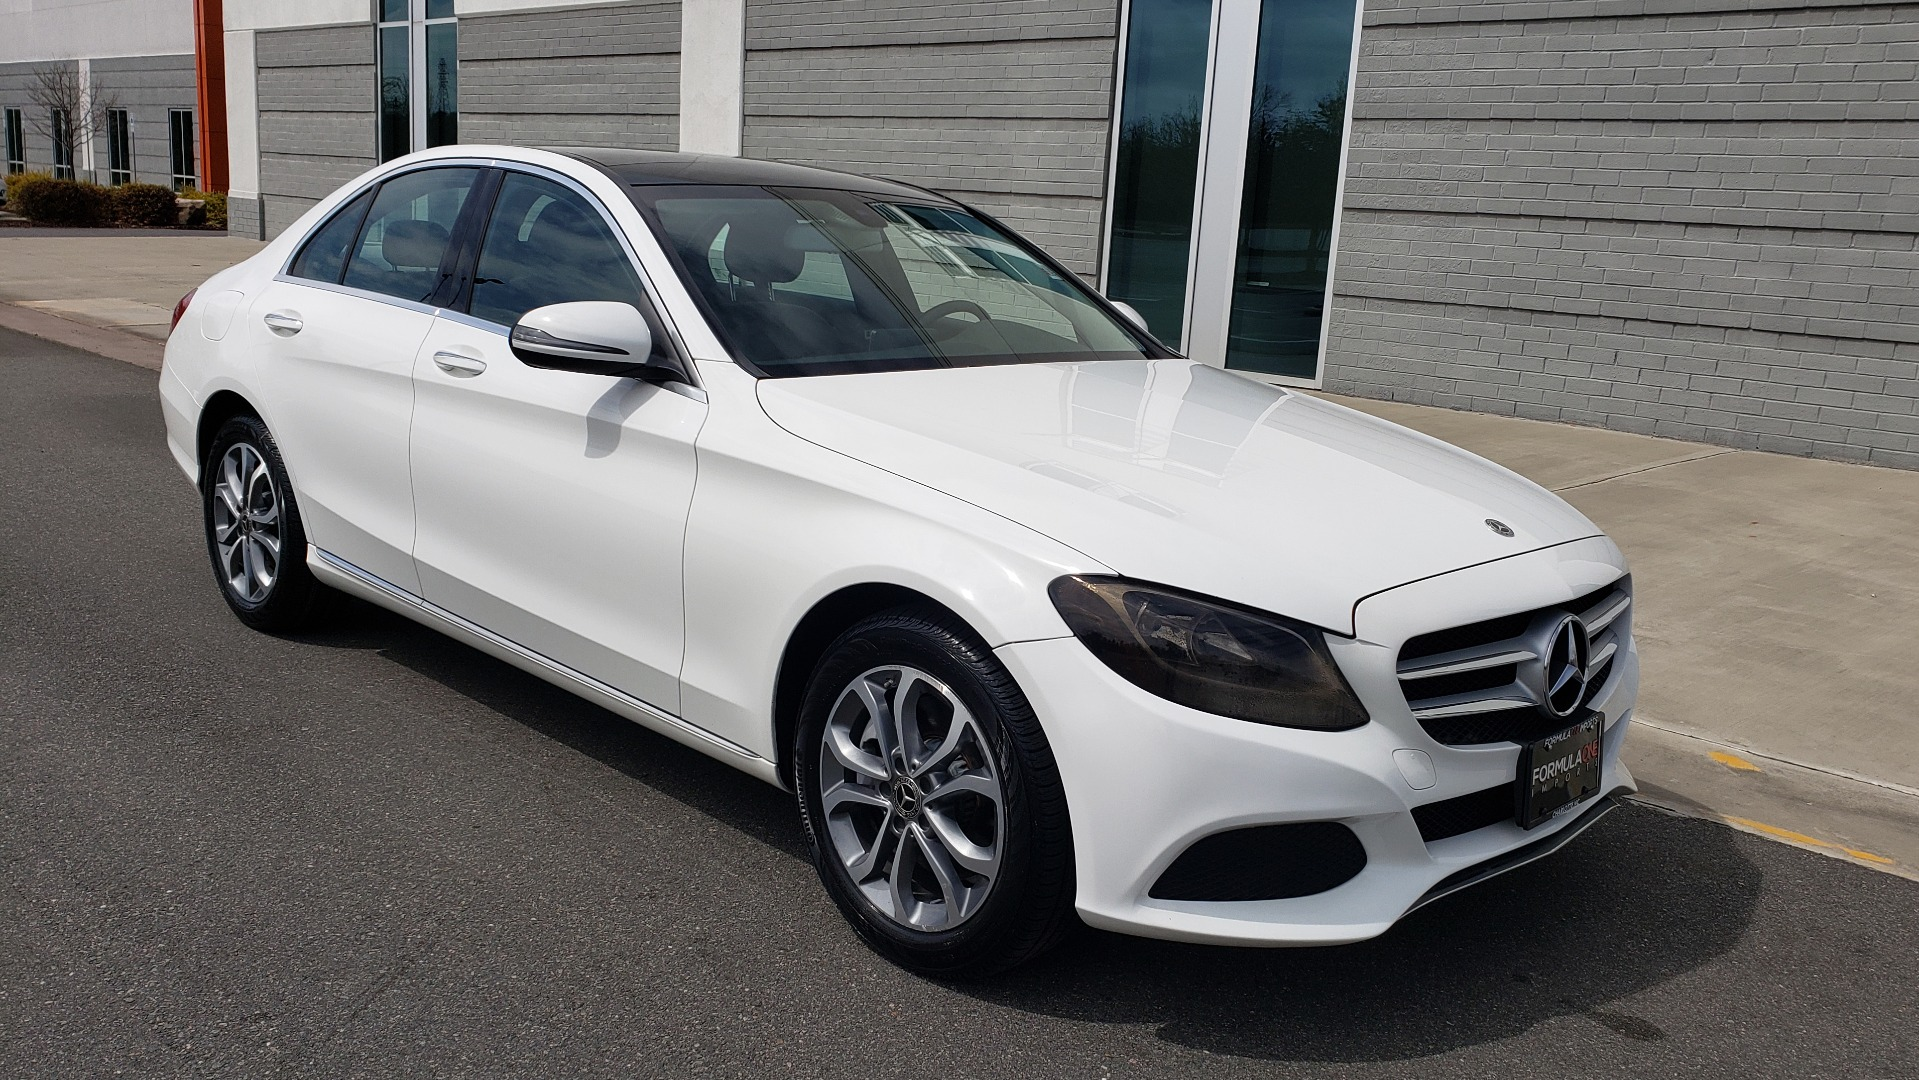 Used 2018 Mercedes-Benz C-CLASS C 300 4MATIC PREMIUM / HTD STS / PANO-ROOF / REARVIEW for sale Sold at Formula Imports in Charlotte NC 28227 5